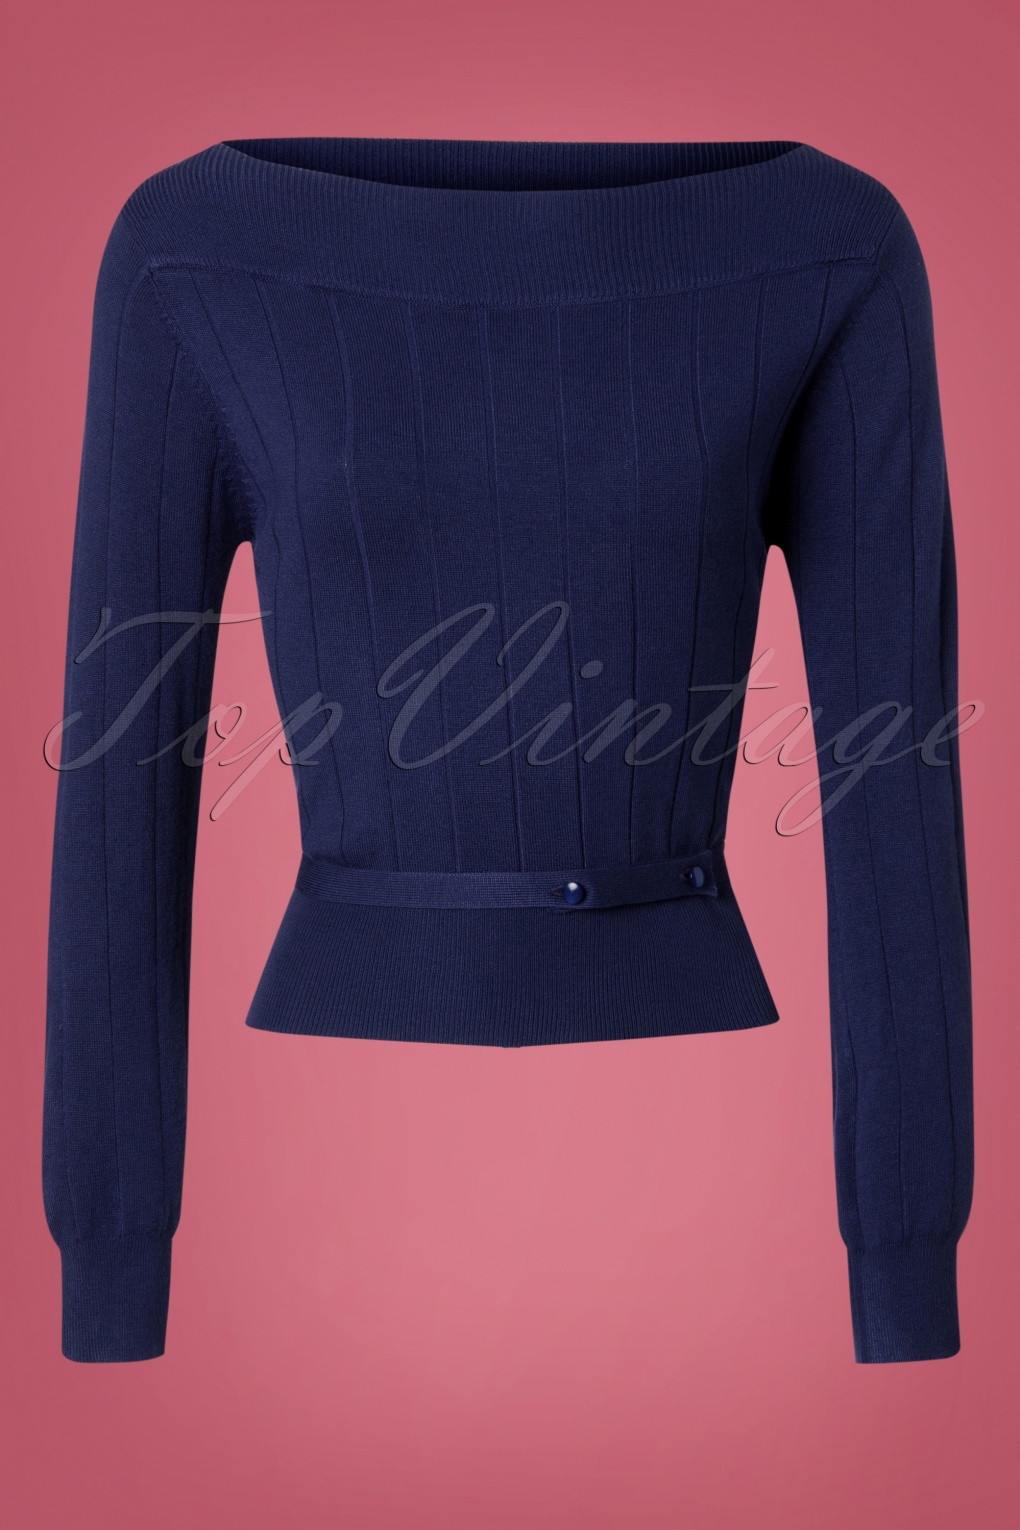 Vintage & Retro Shirts, Halter Tops, Blouses 60s Violetta Knitted Top in Night Blue £33.03 AT vintagedancer.com